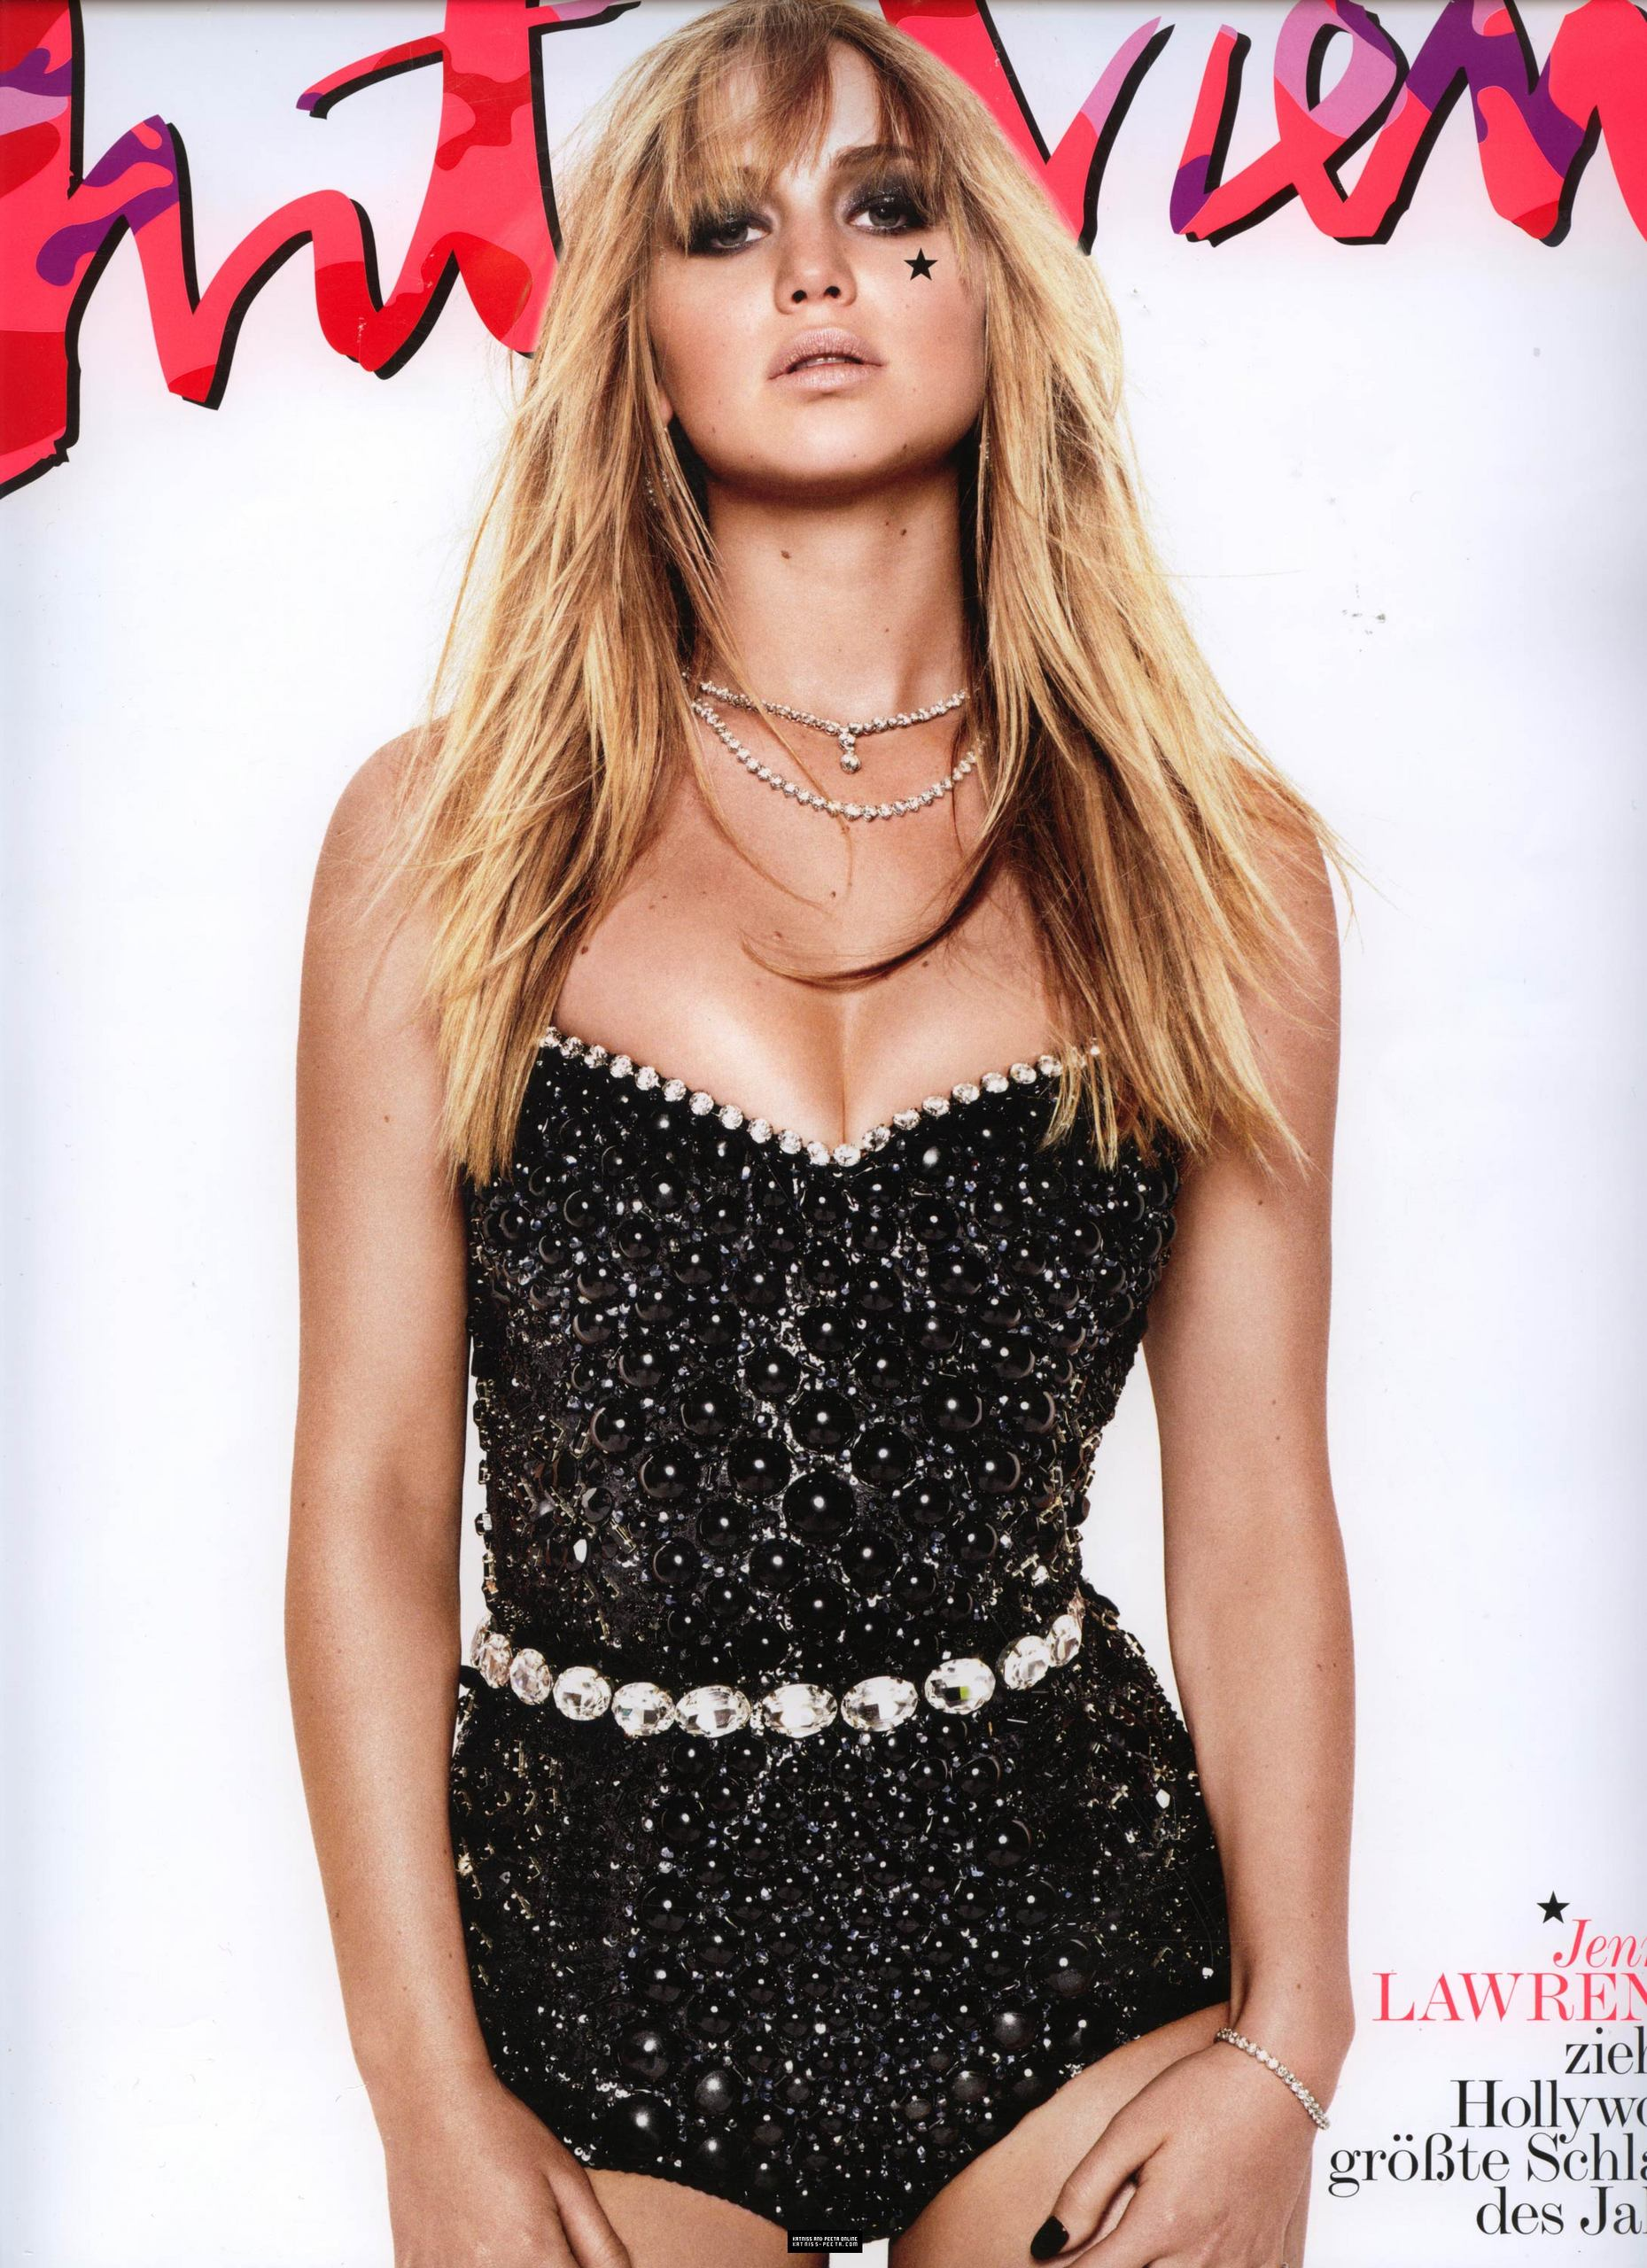 Interview Magazine scans jenn